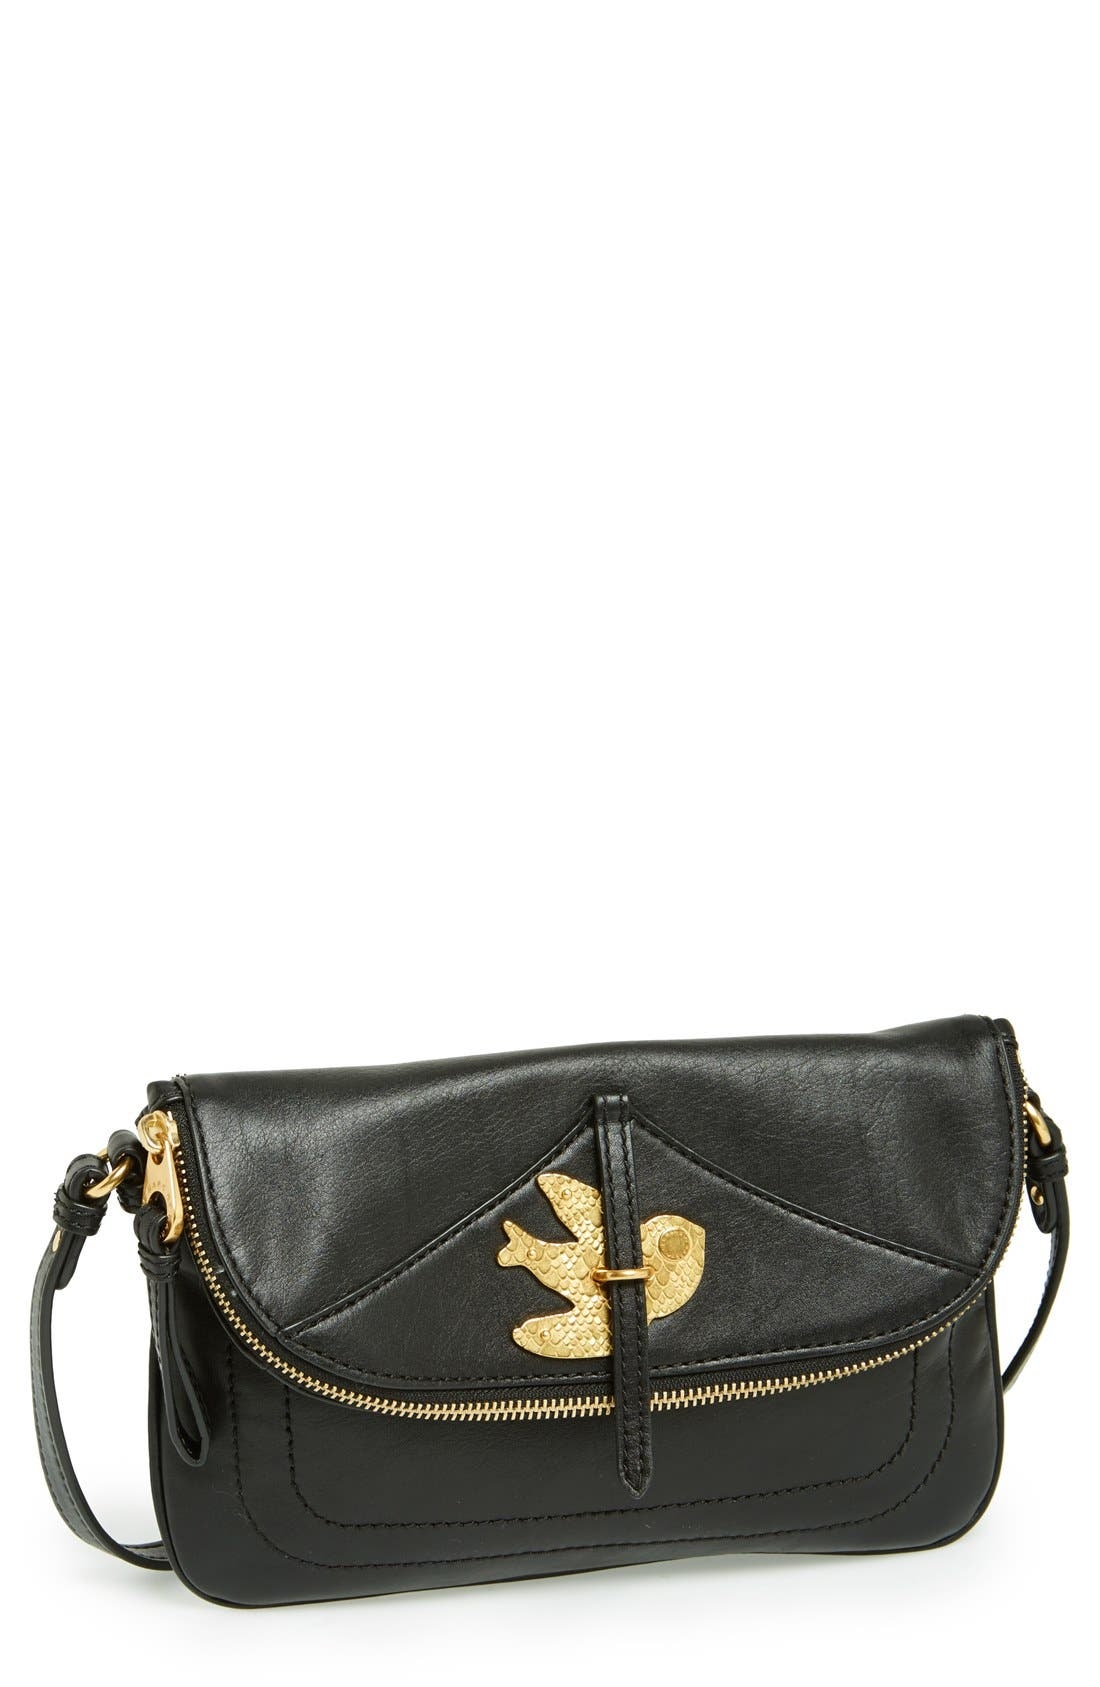 MARC JACOBS,                             MARC BY MARC JACOBS 'Petal to the Metal - Percy' Crossbody Bag,                             Main thumbnail 1, color,                             001